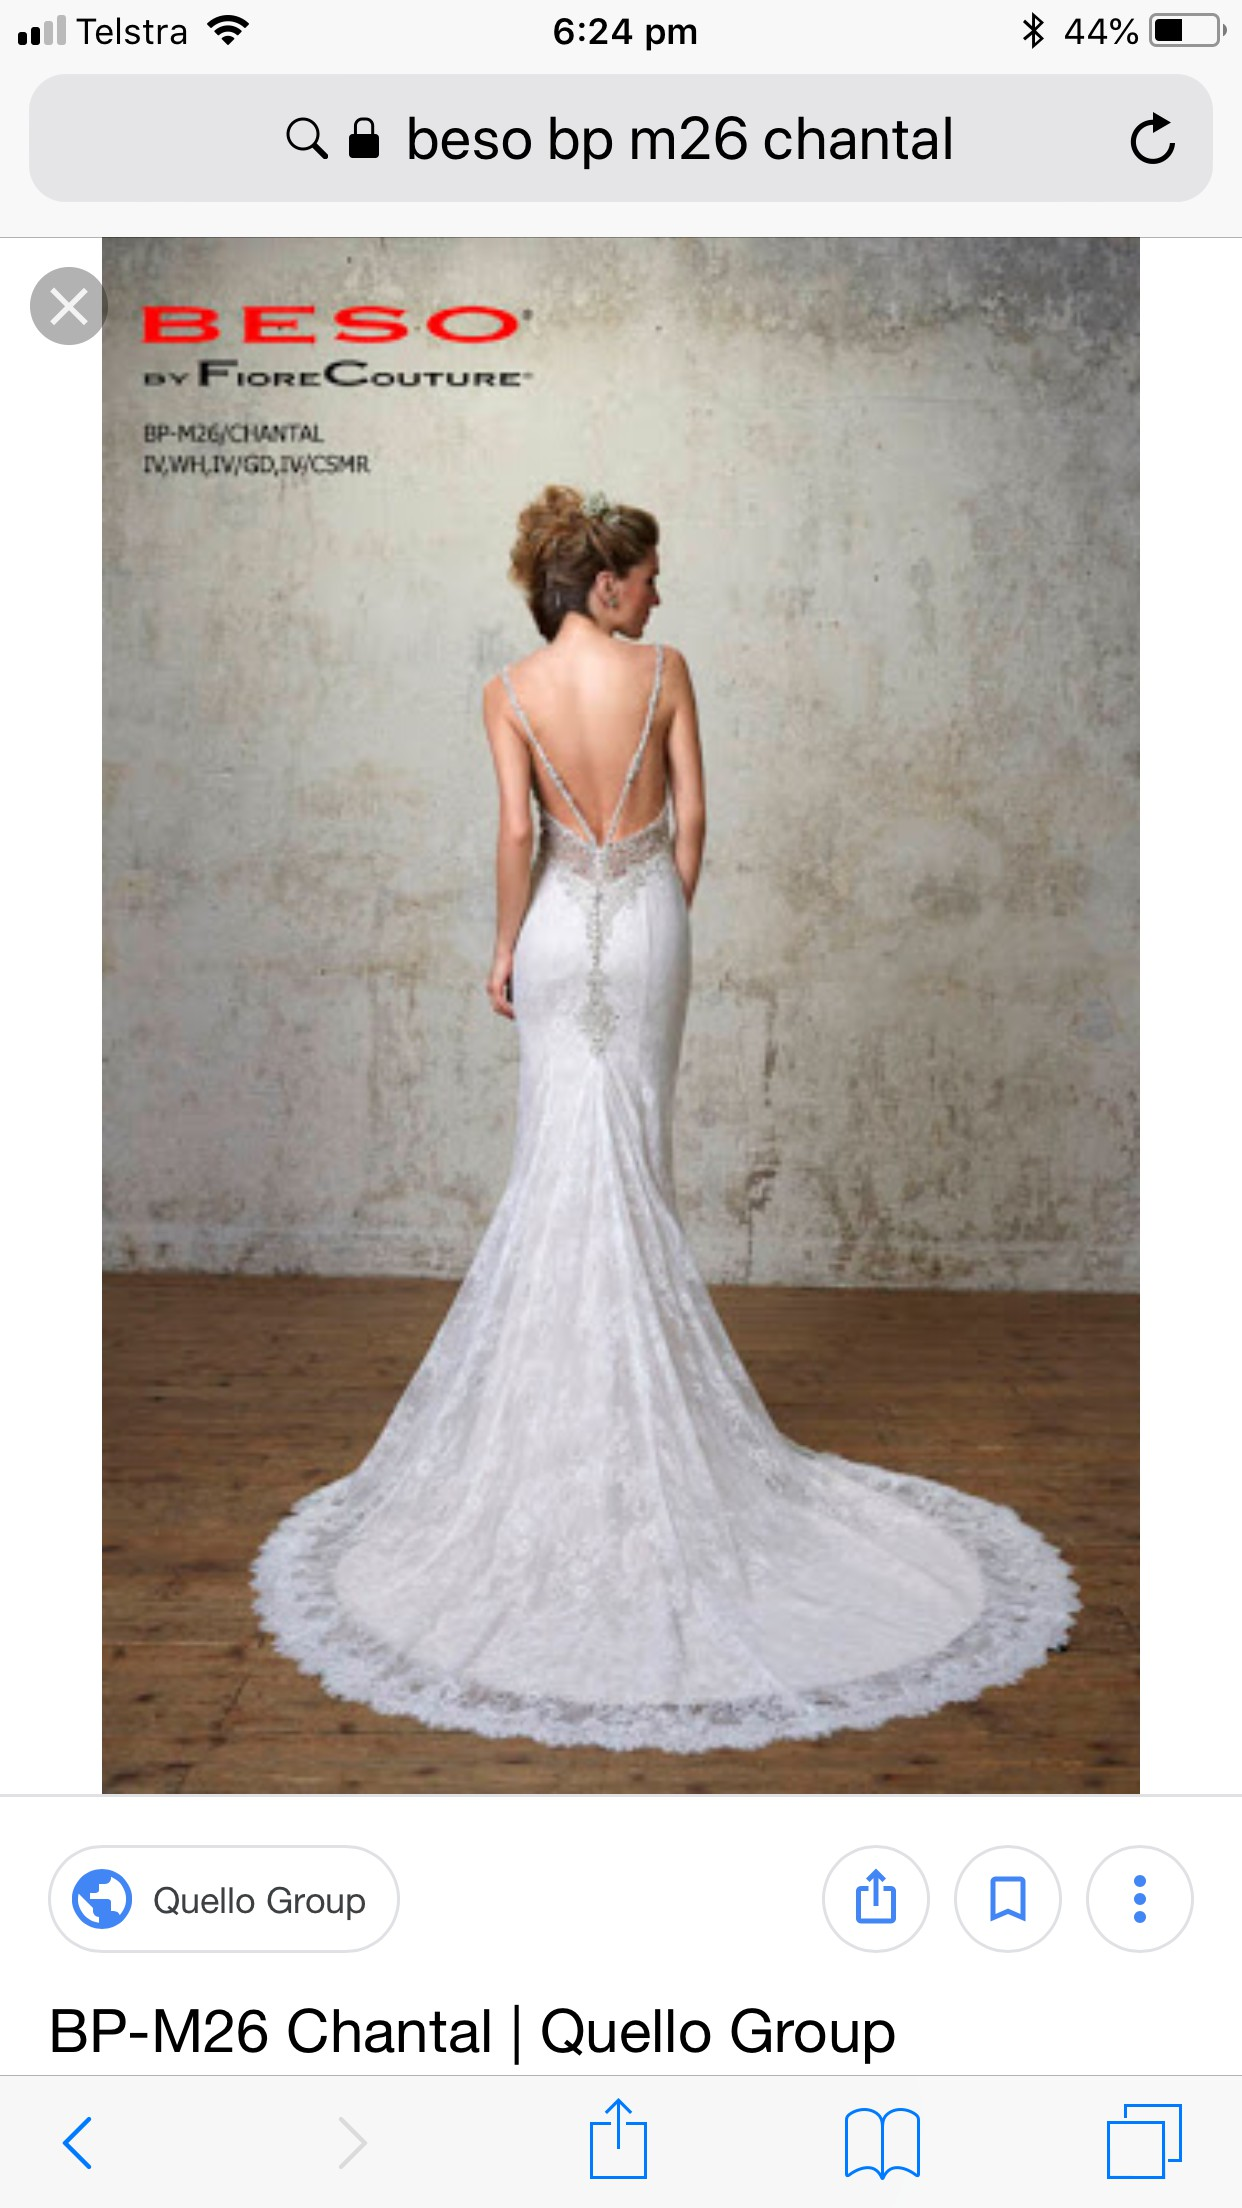 Fiore Couture Chantal Sample Wedding Dress On Sale 80 Off